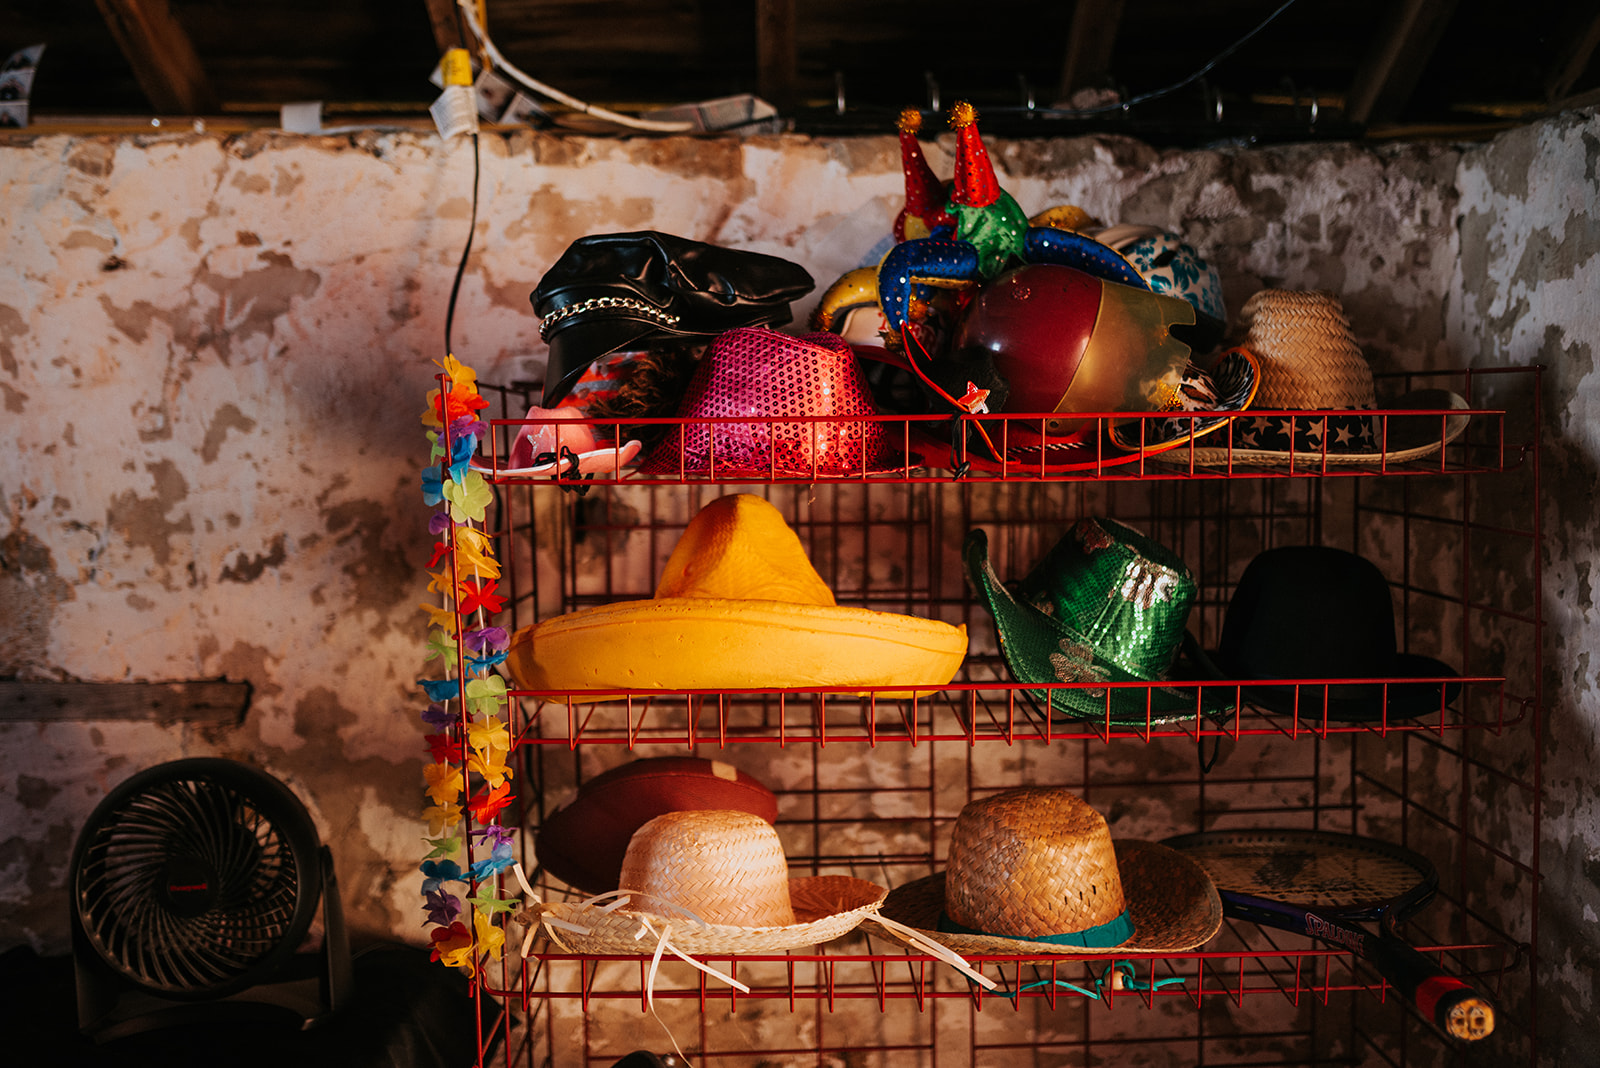 overthevineswisconsinwedding_1103.jpg